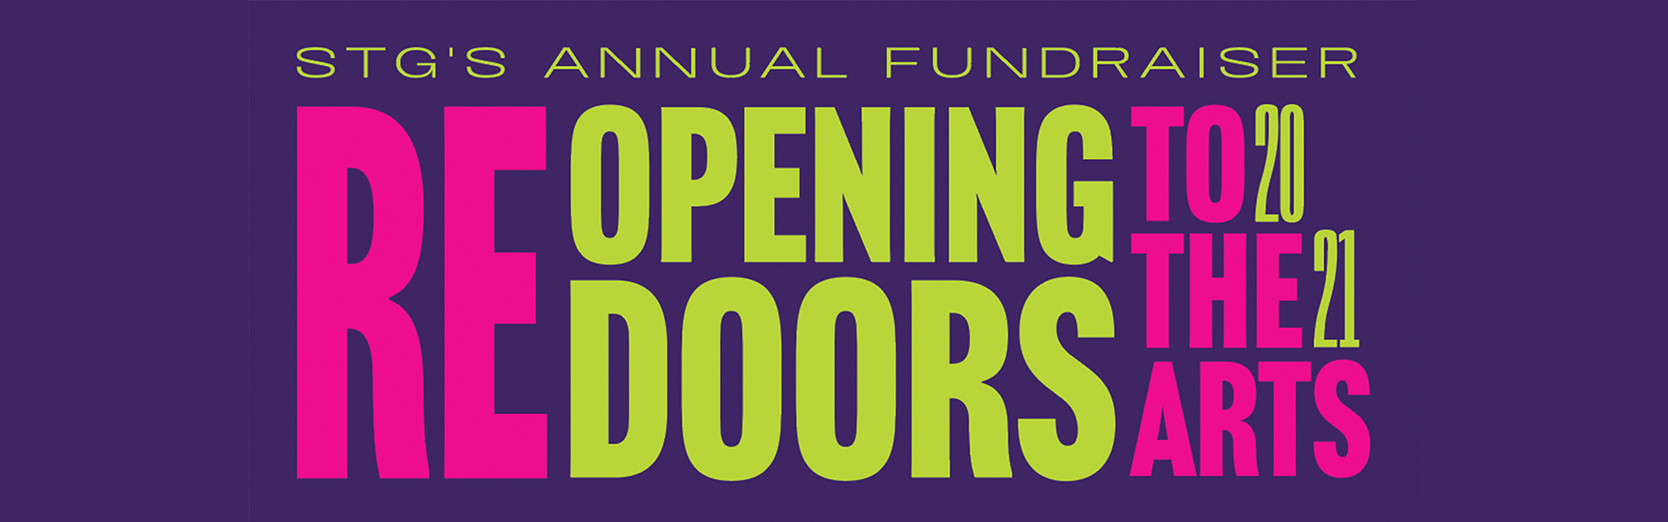 STG's Annual Fundraiser - Reopening Doors to the Arts graphic